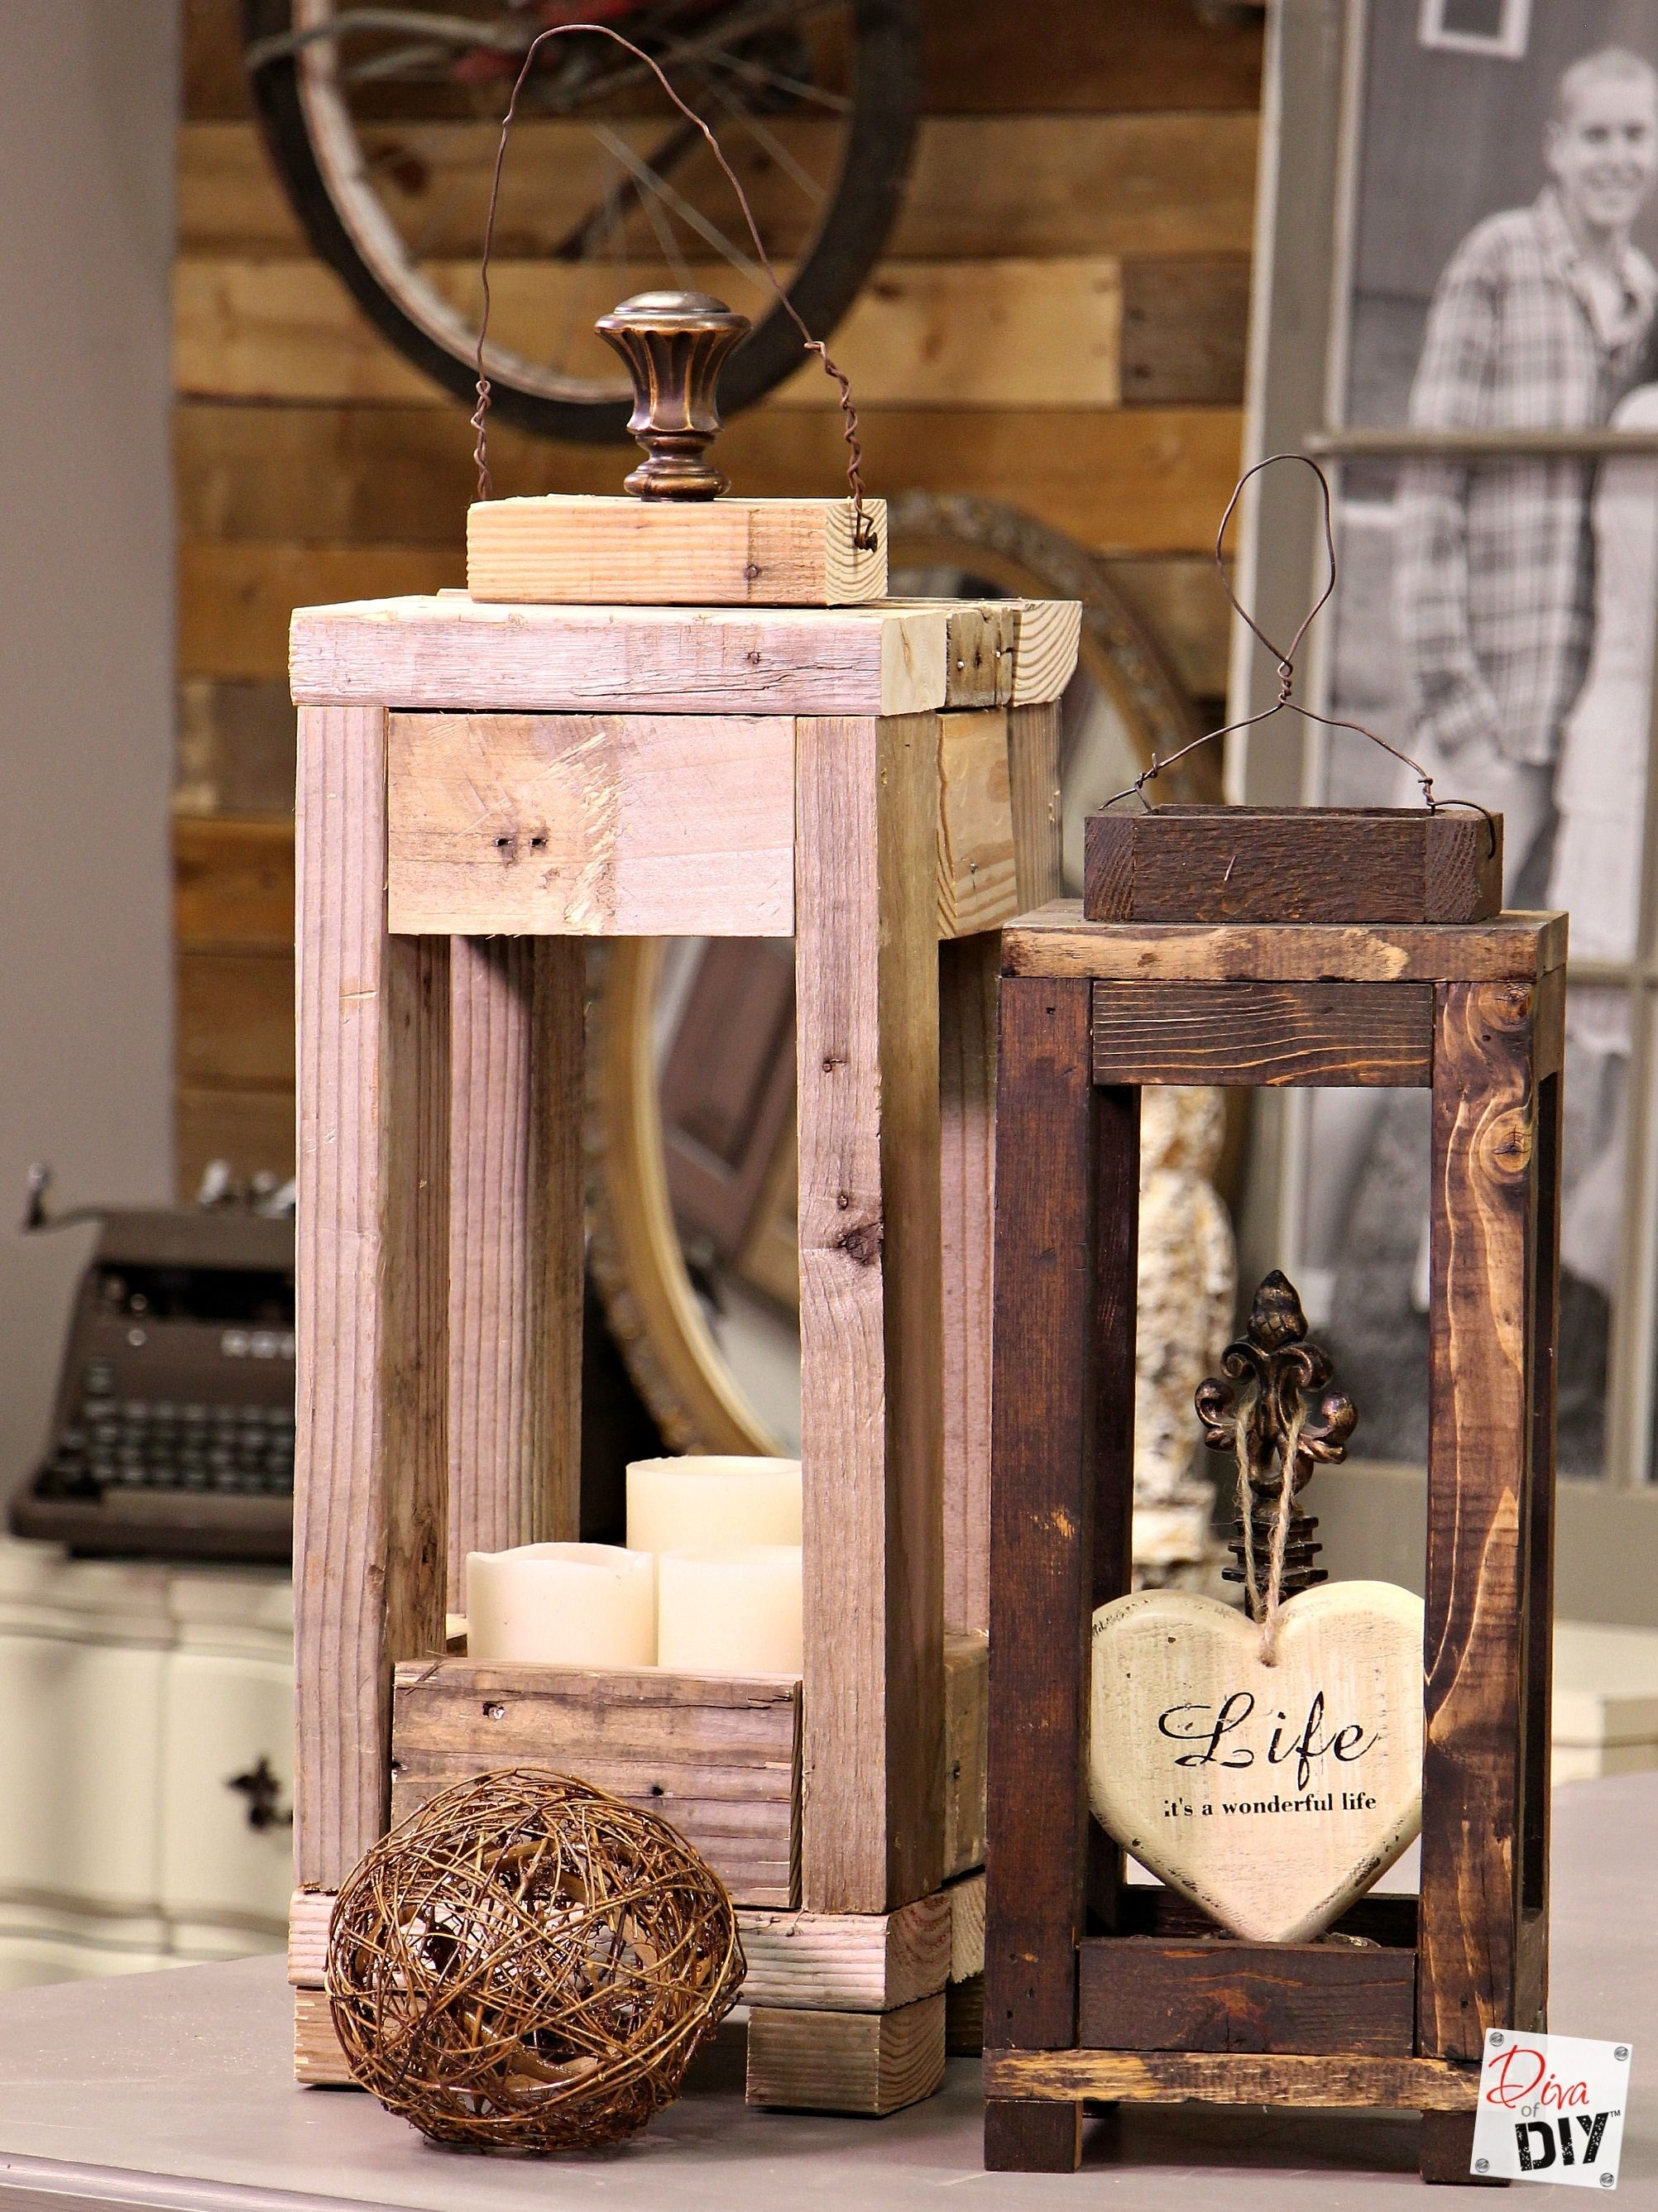 Easy Outdoor Decor: How To Make Lanterns From Scrap Wood | Diy Throughout Outdoor Wood Lanterns (View 5 of 20)